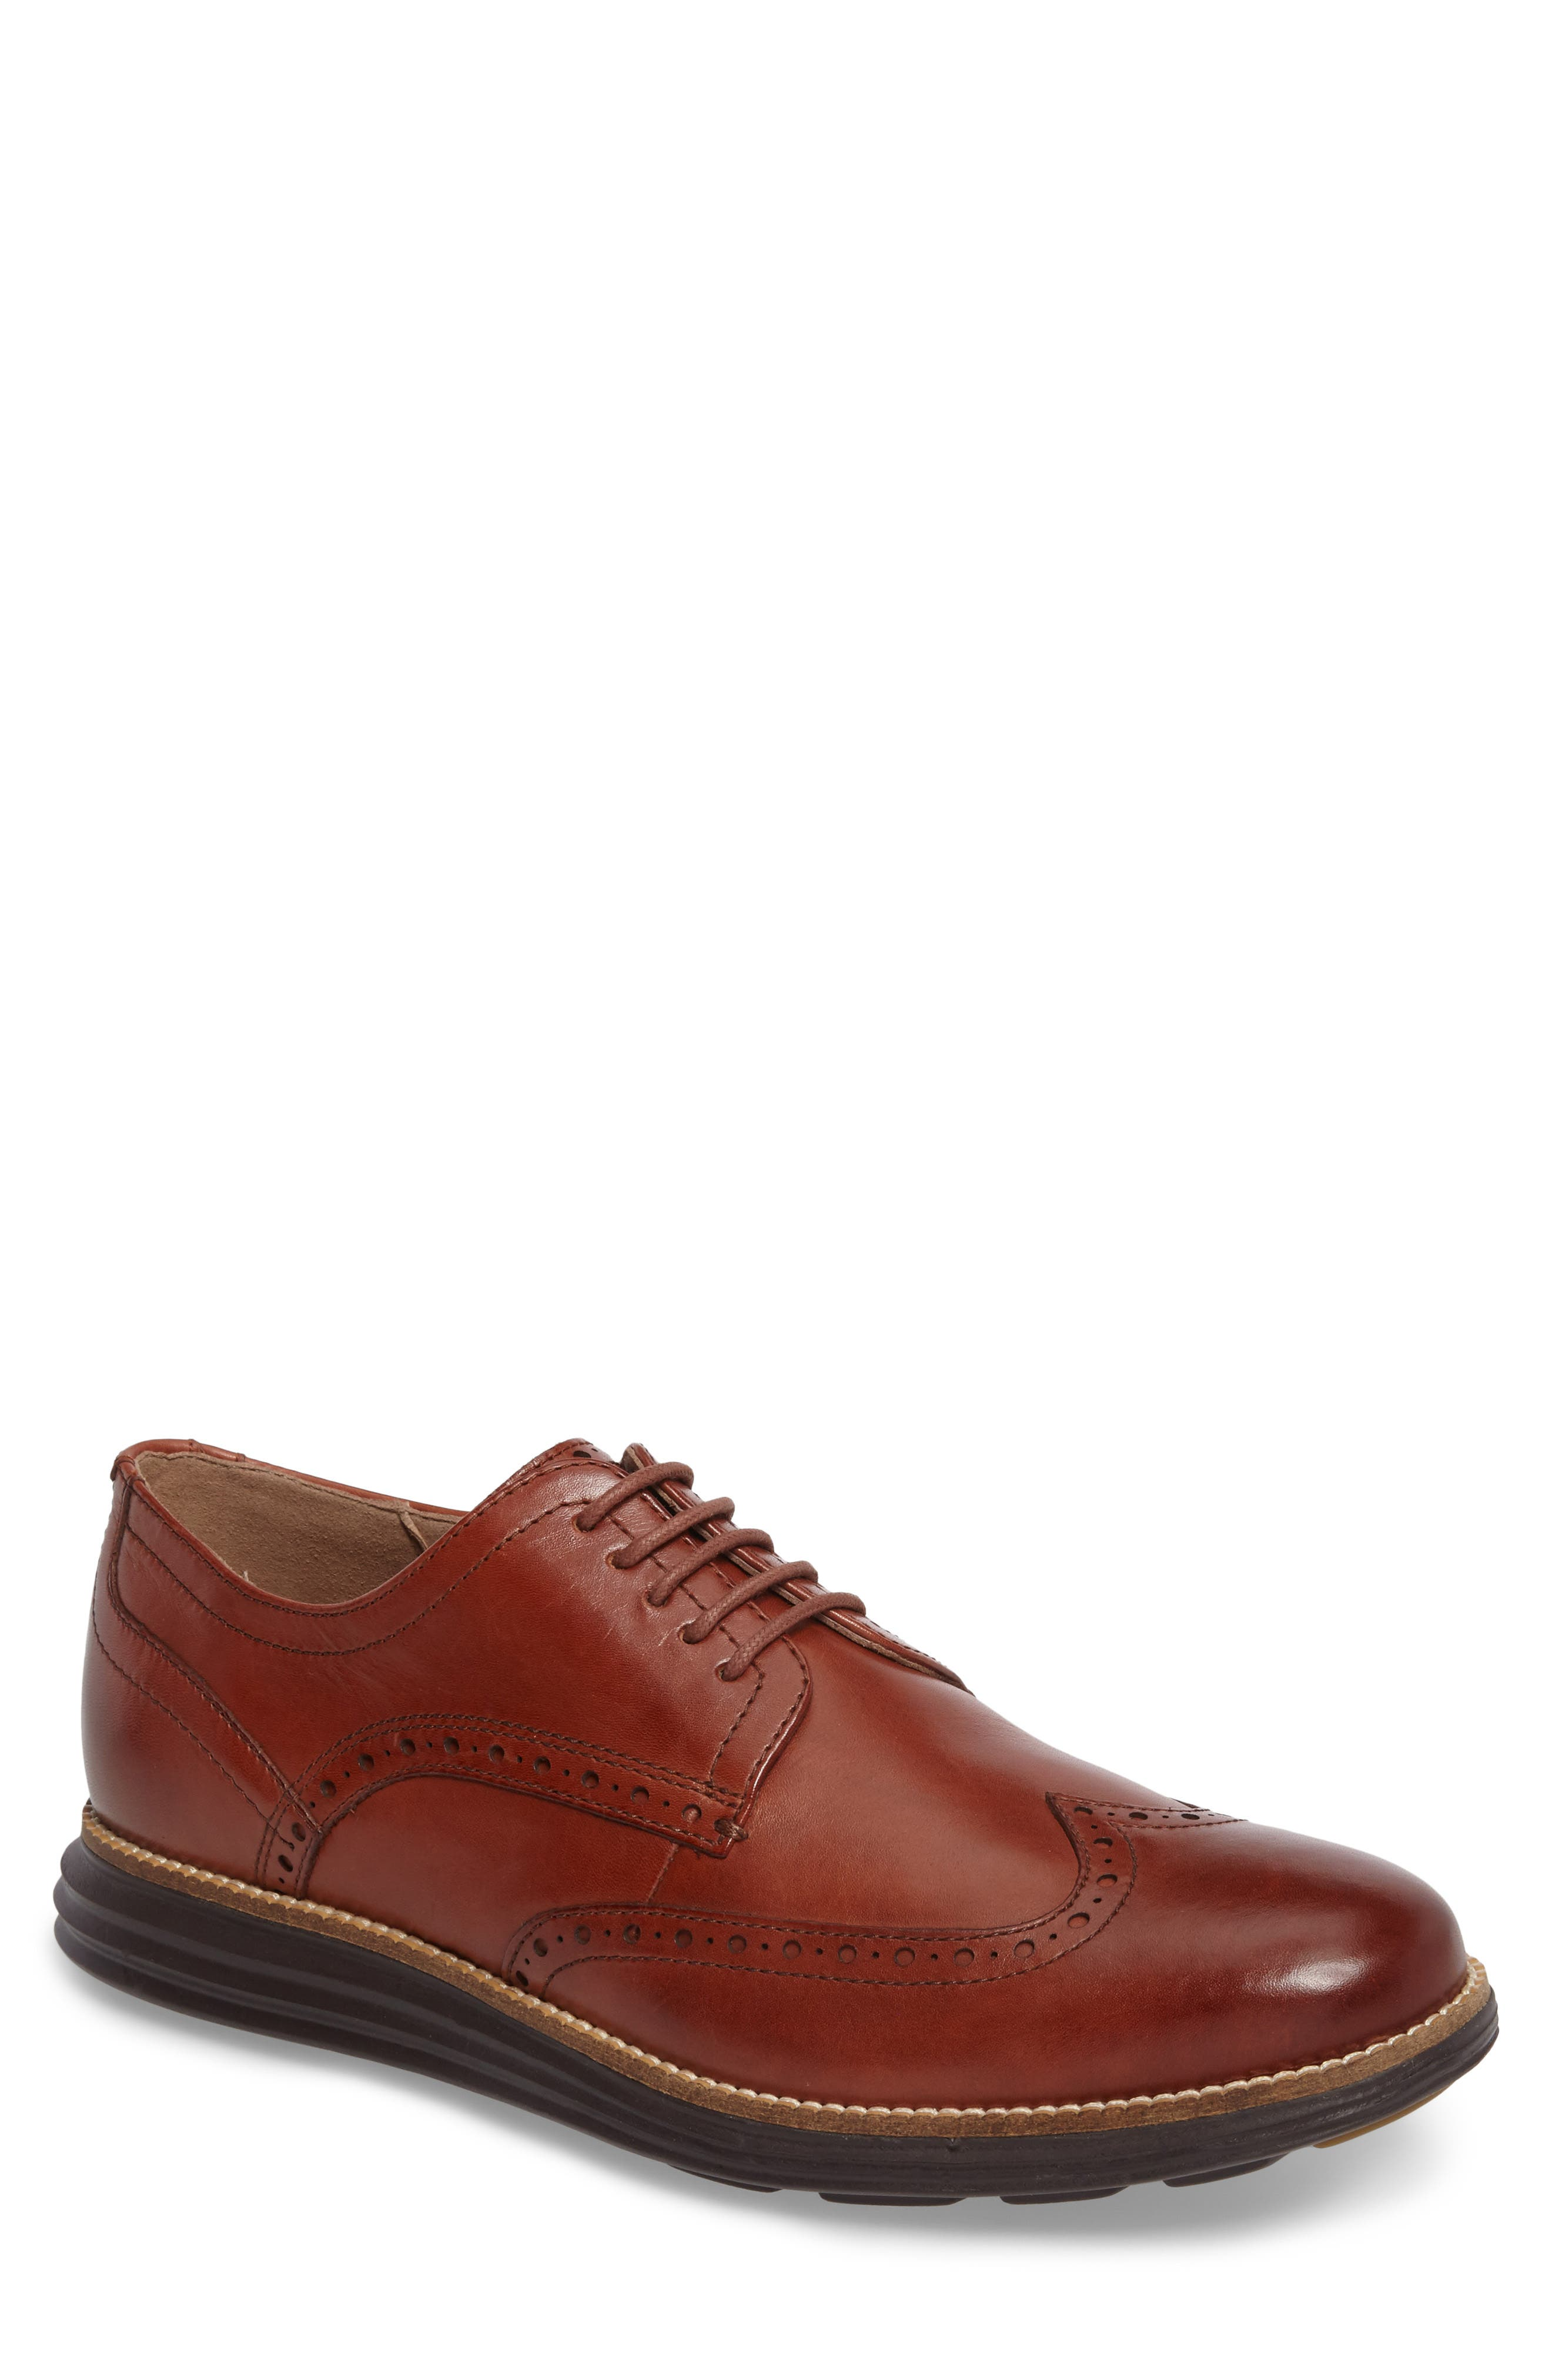 COLE HAAN Original Grand Wingtip, Main, color, WOODBURY/ JAVA LEATHER